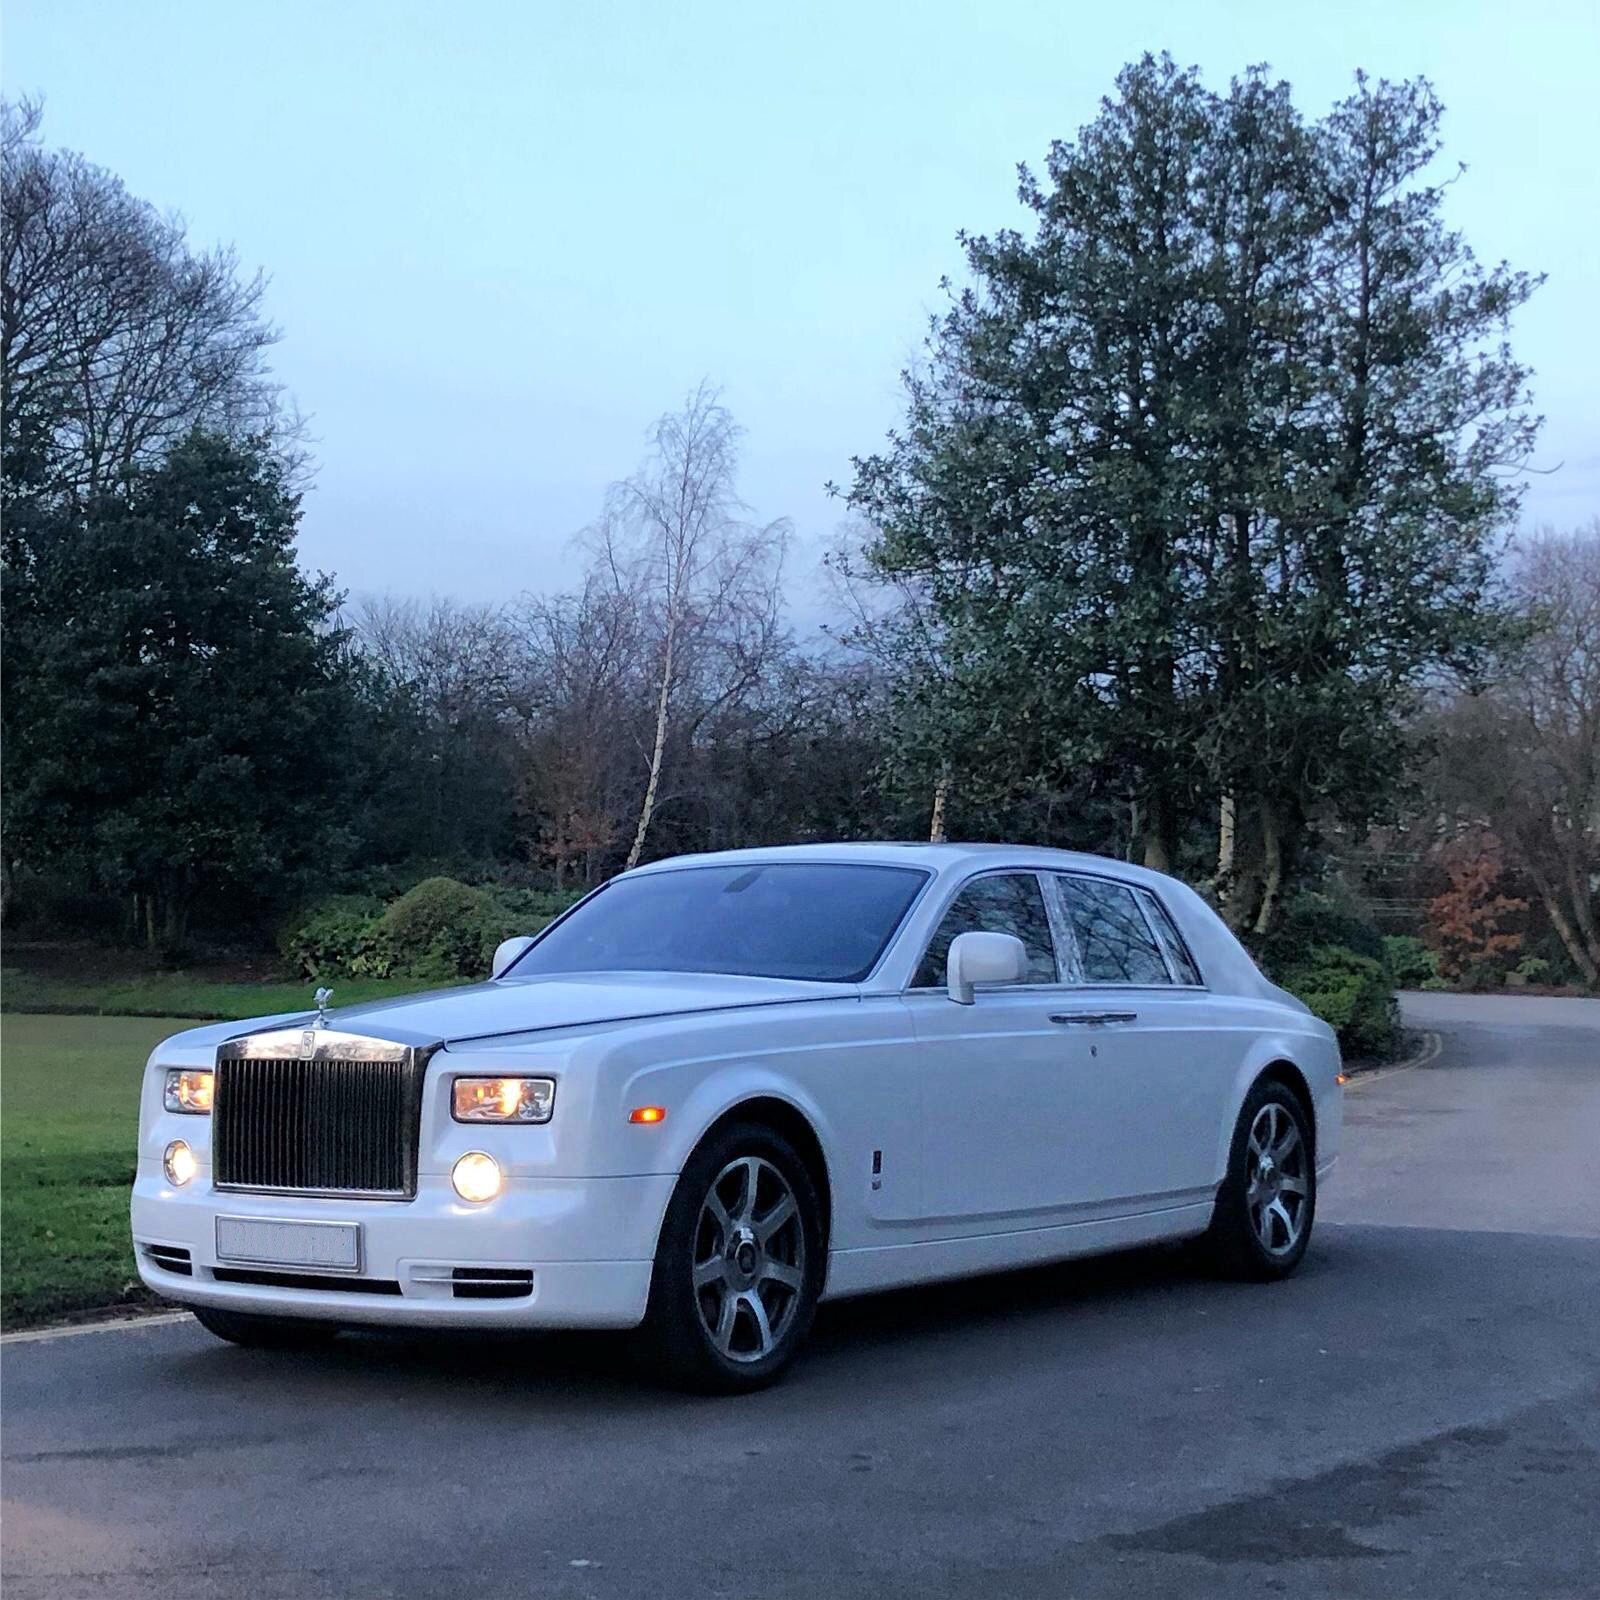 Rolls Royce wrapped in Metallic White